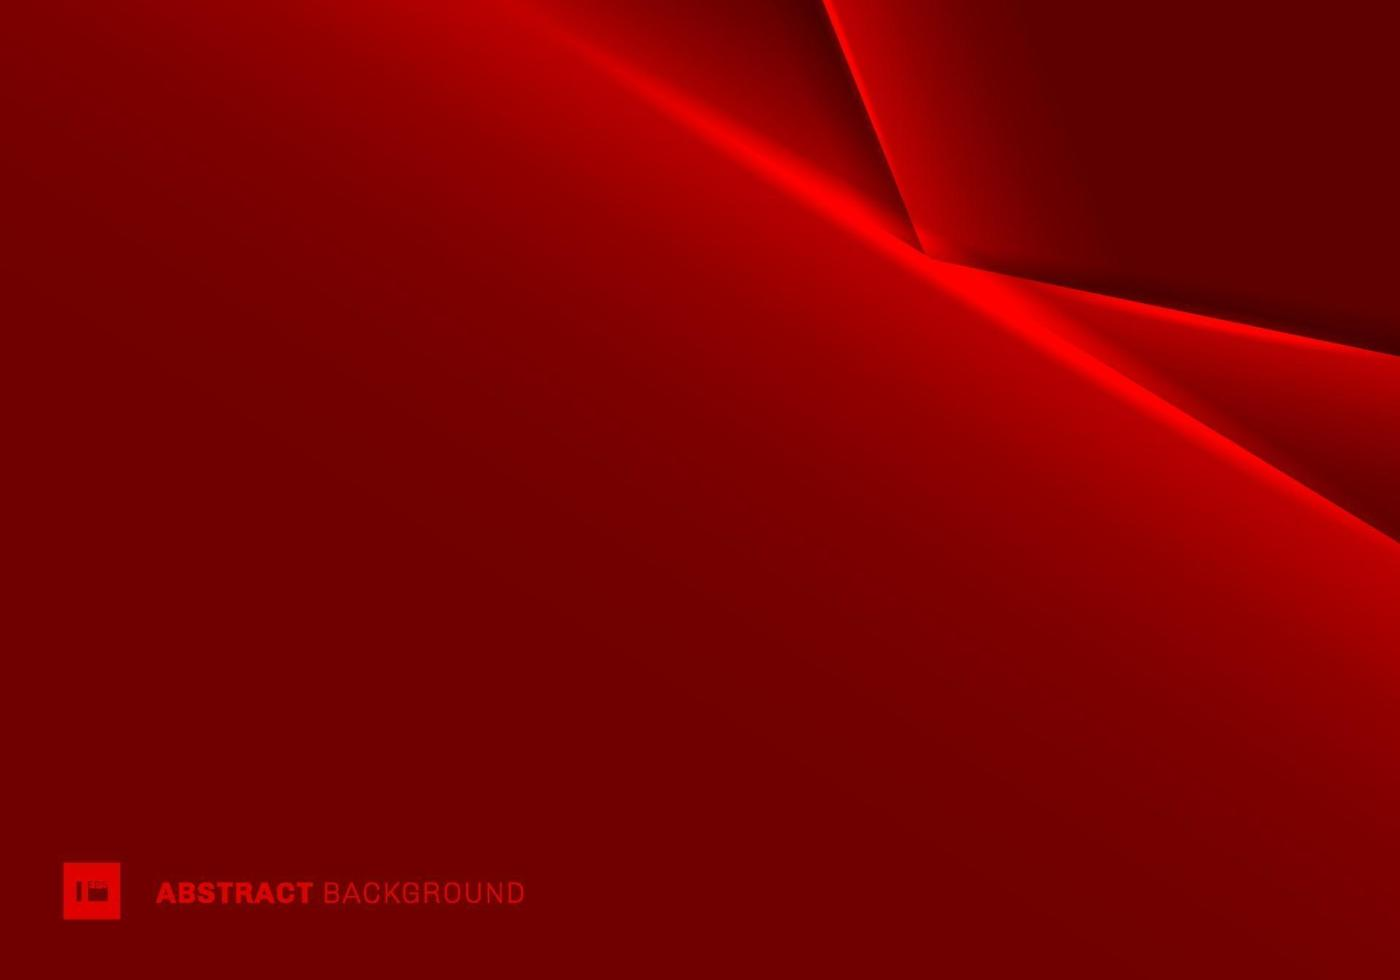 abstracte sjabloon rood frame lay-out metallic licht op donkere achtergrond. futuristisch technologieconcept. vector